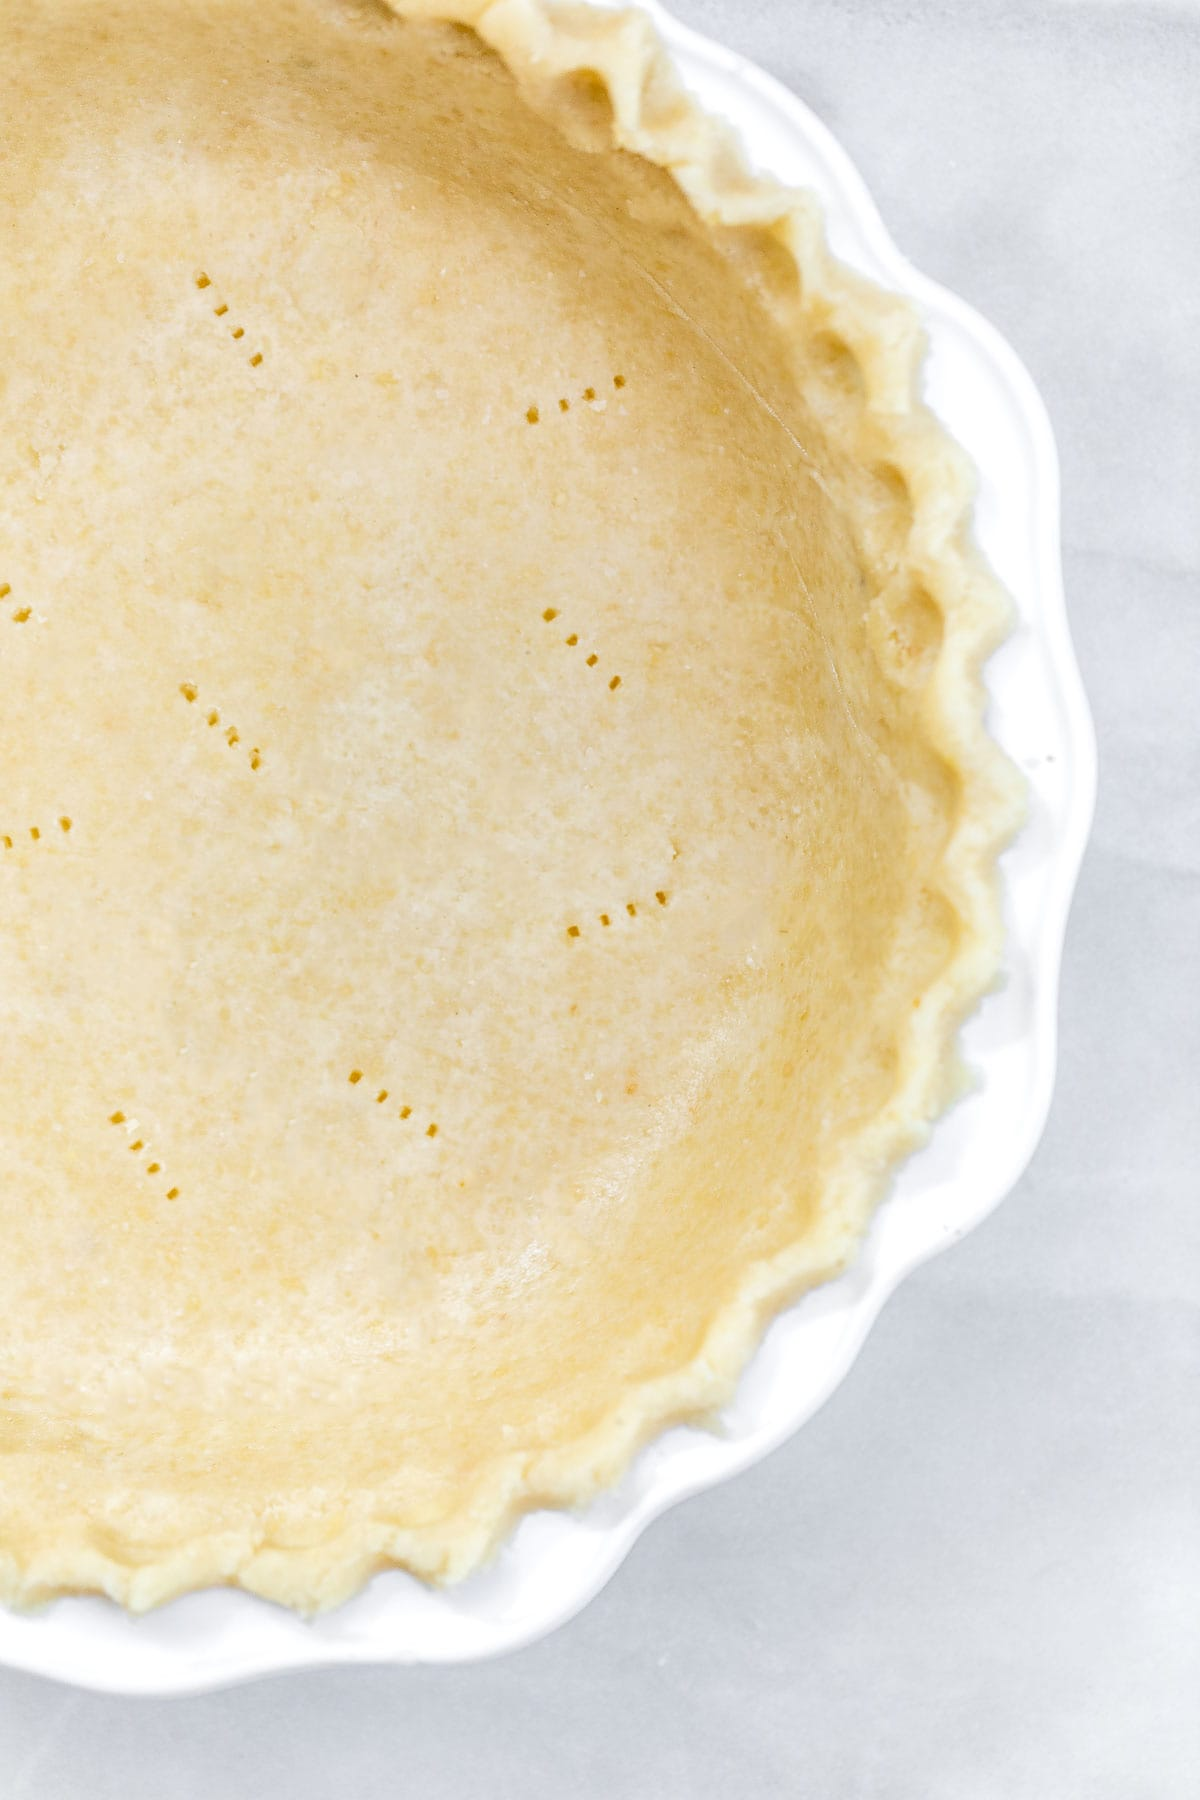 Gluten free pie crust in a white pie plate.